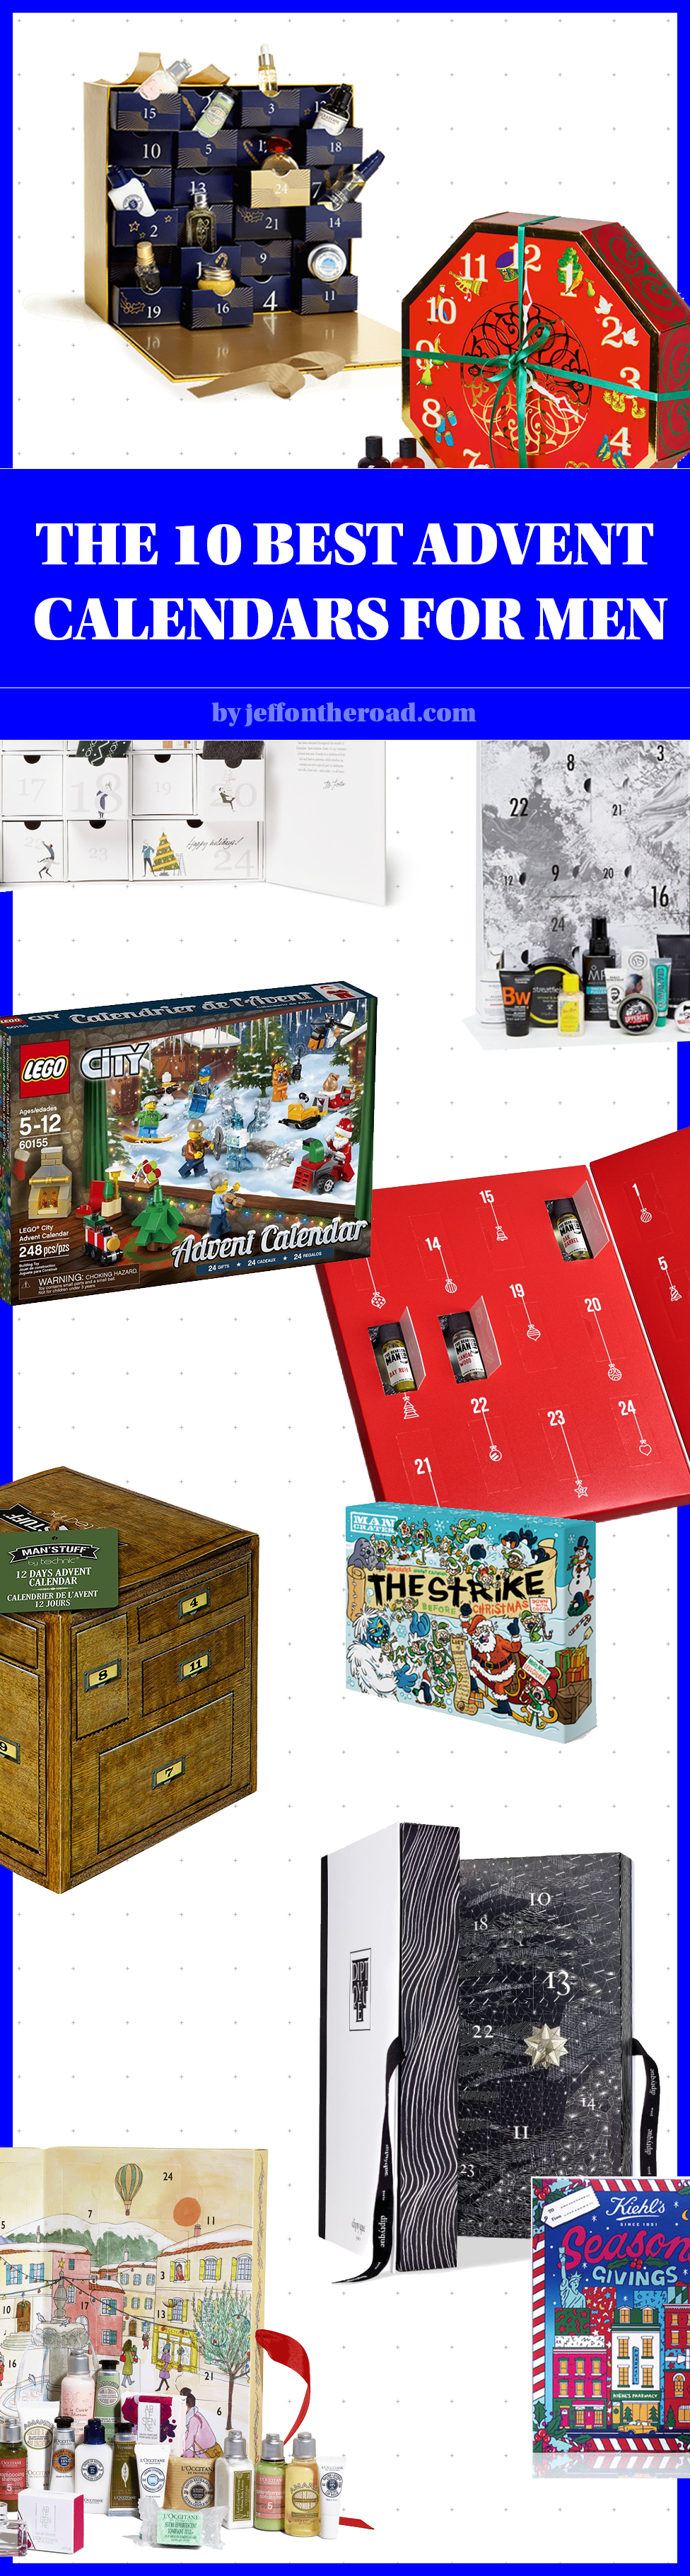 Jeff On The Road - Holidays - Gifts - The 10 Best Advent Calendars For Men